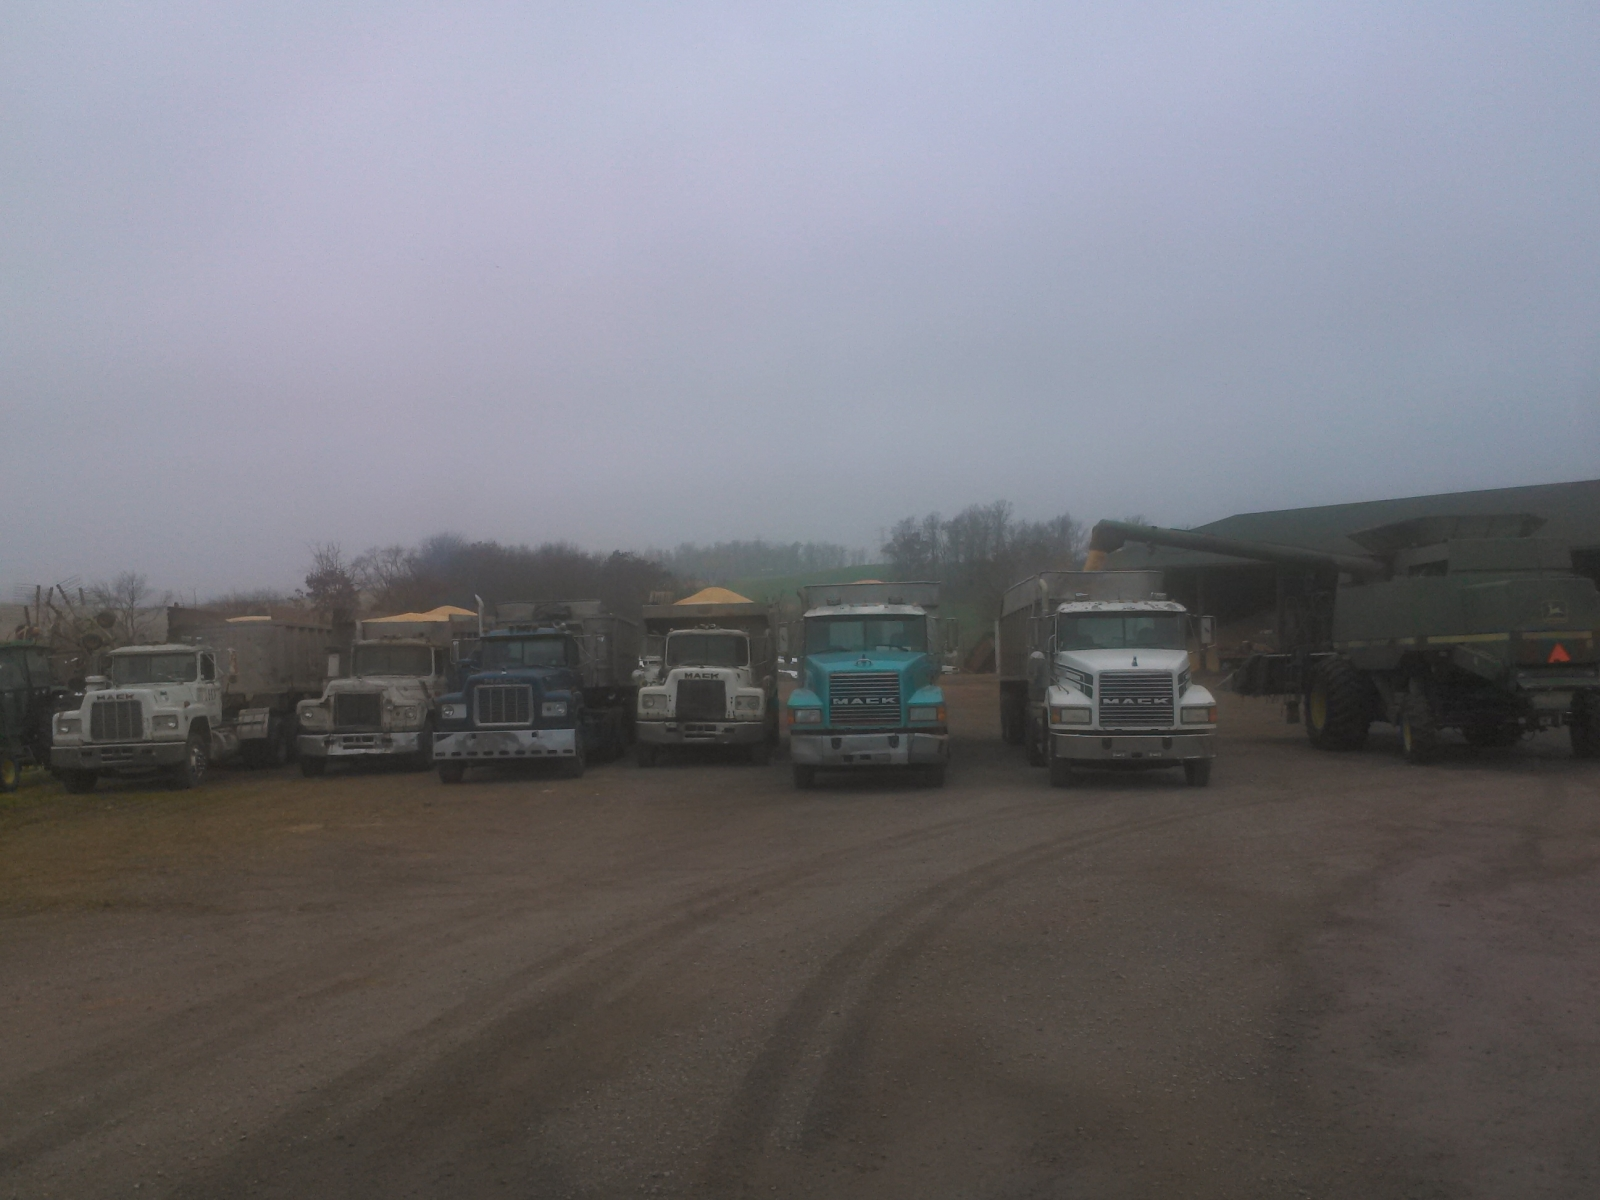 Sunday morning silos full bins ful 40 loads in the shed and all trucks full